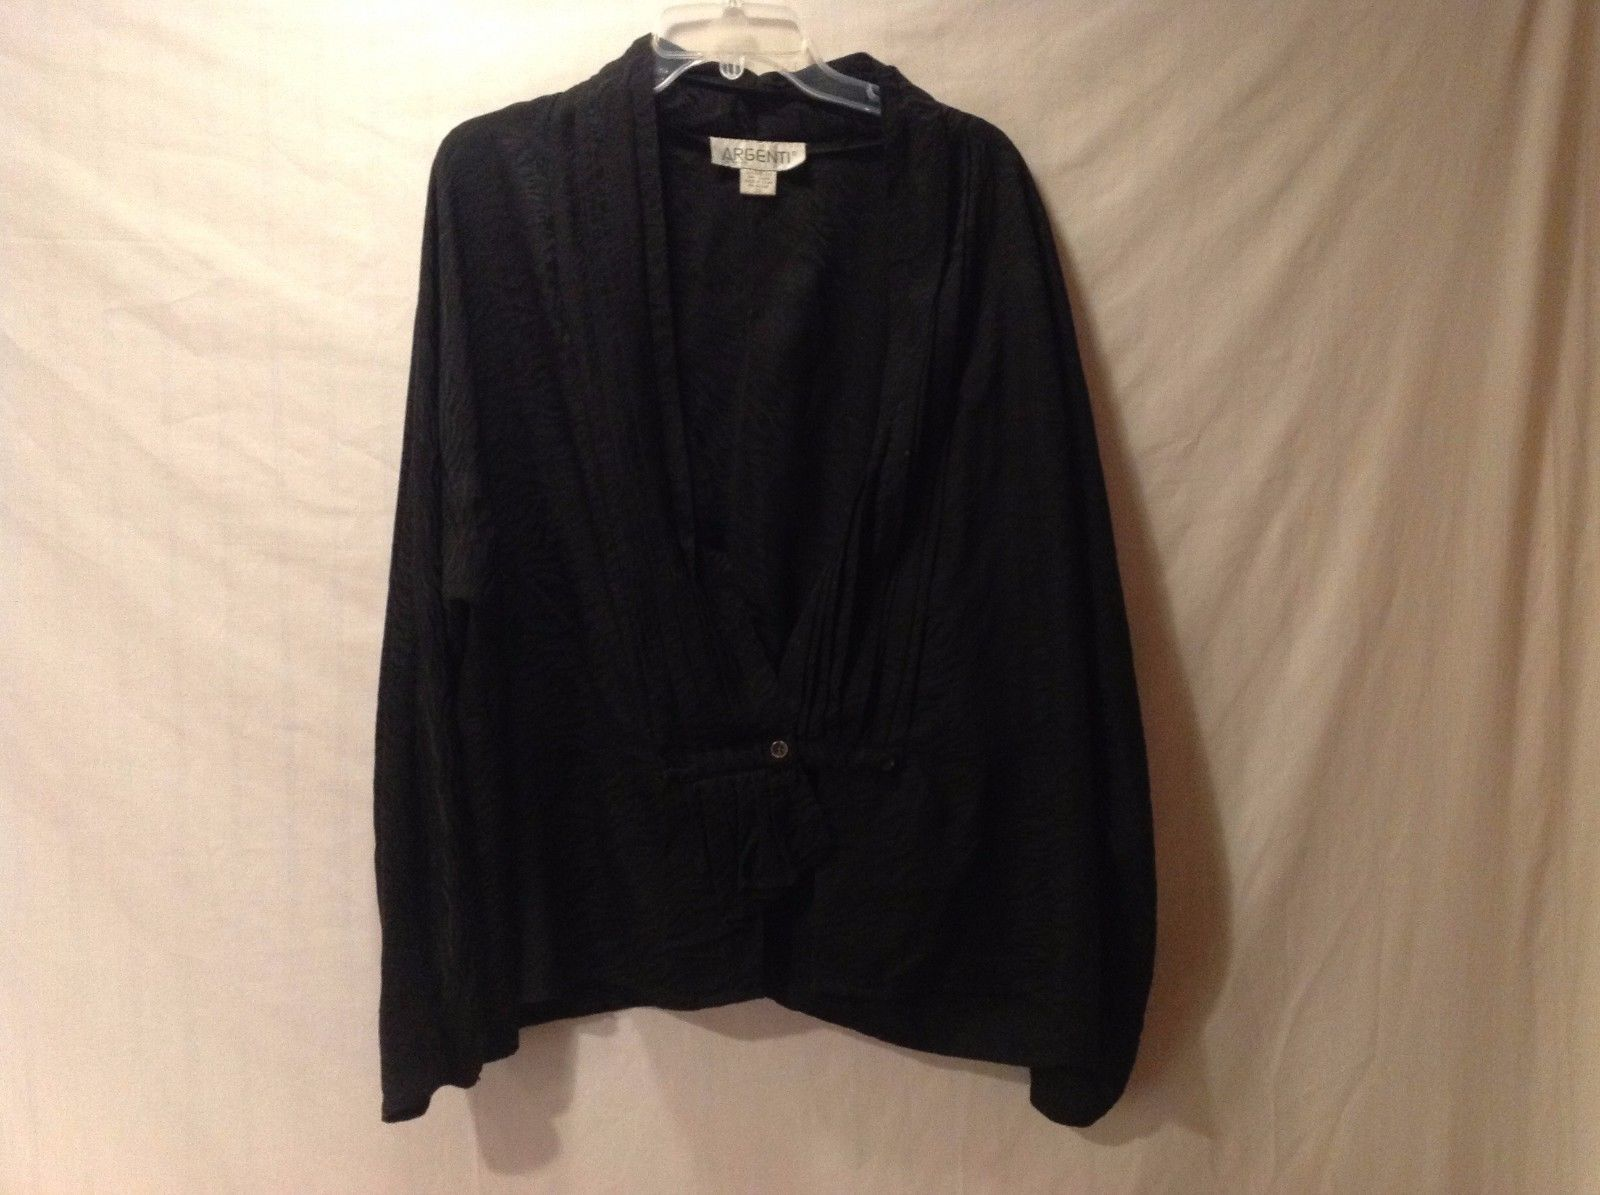 preowned excelent condition size 22 100% silk black argentini v-line cardigan